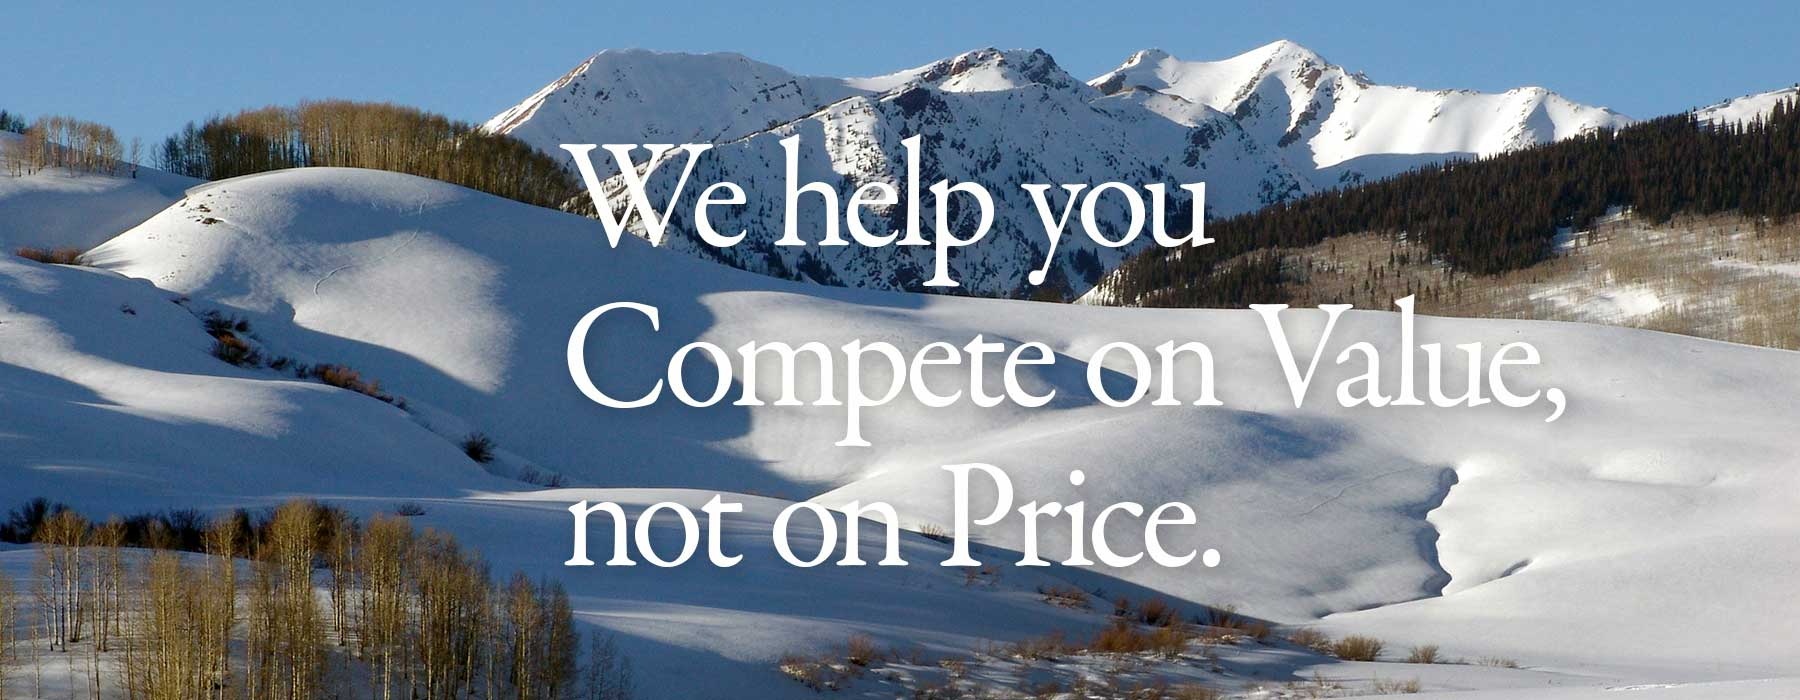 website designers help you compete on value, not on price